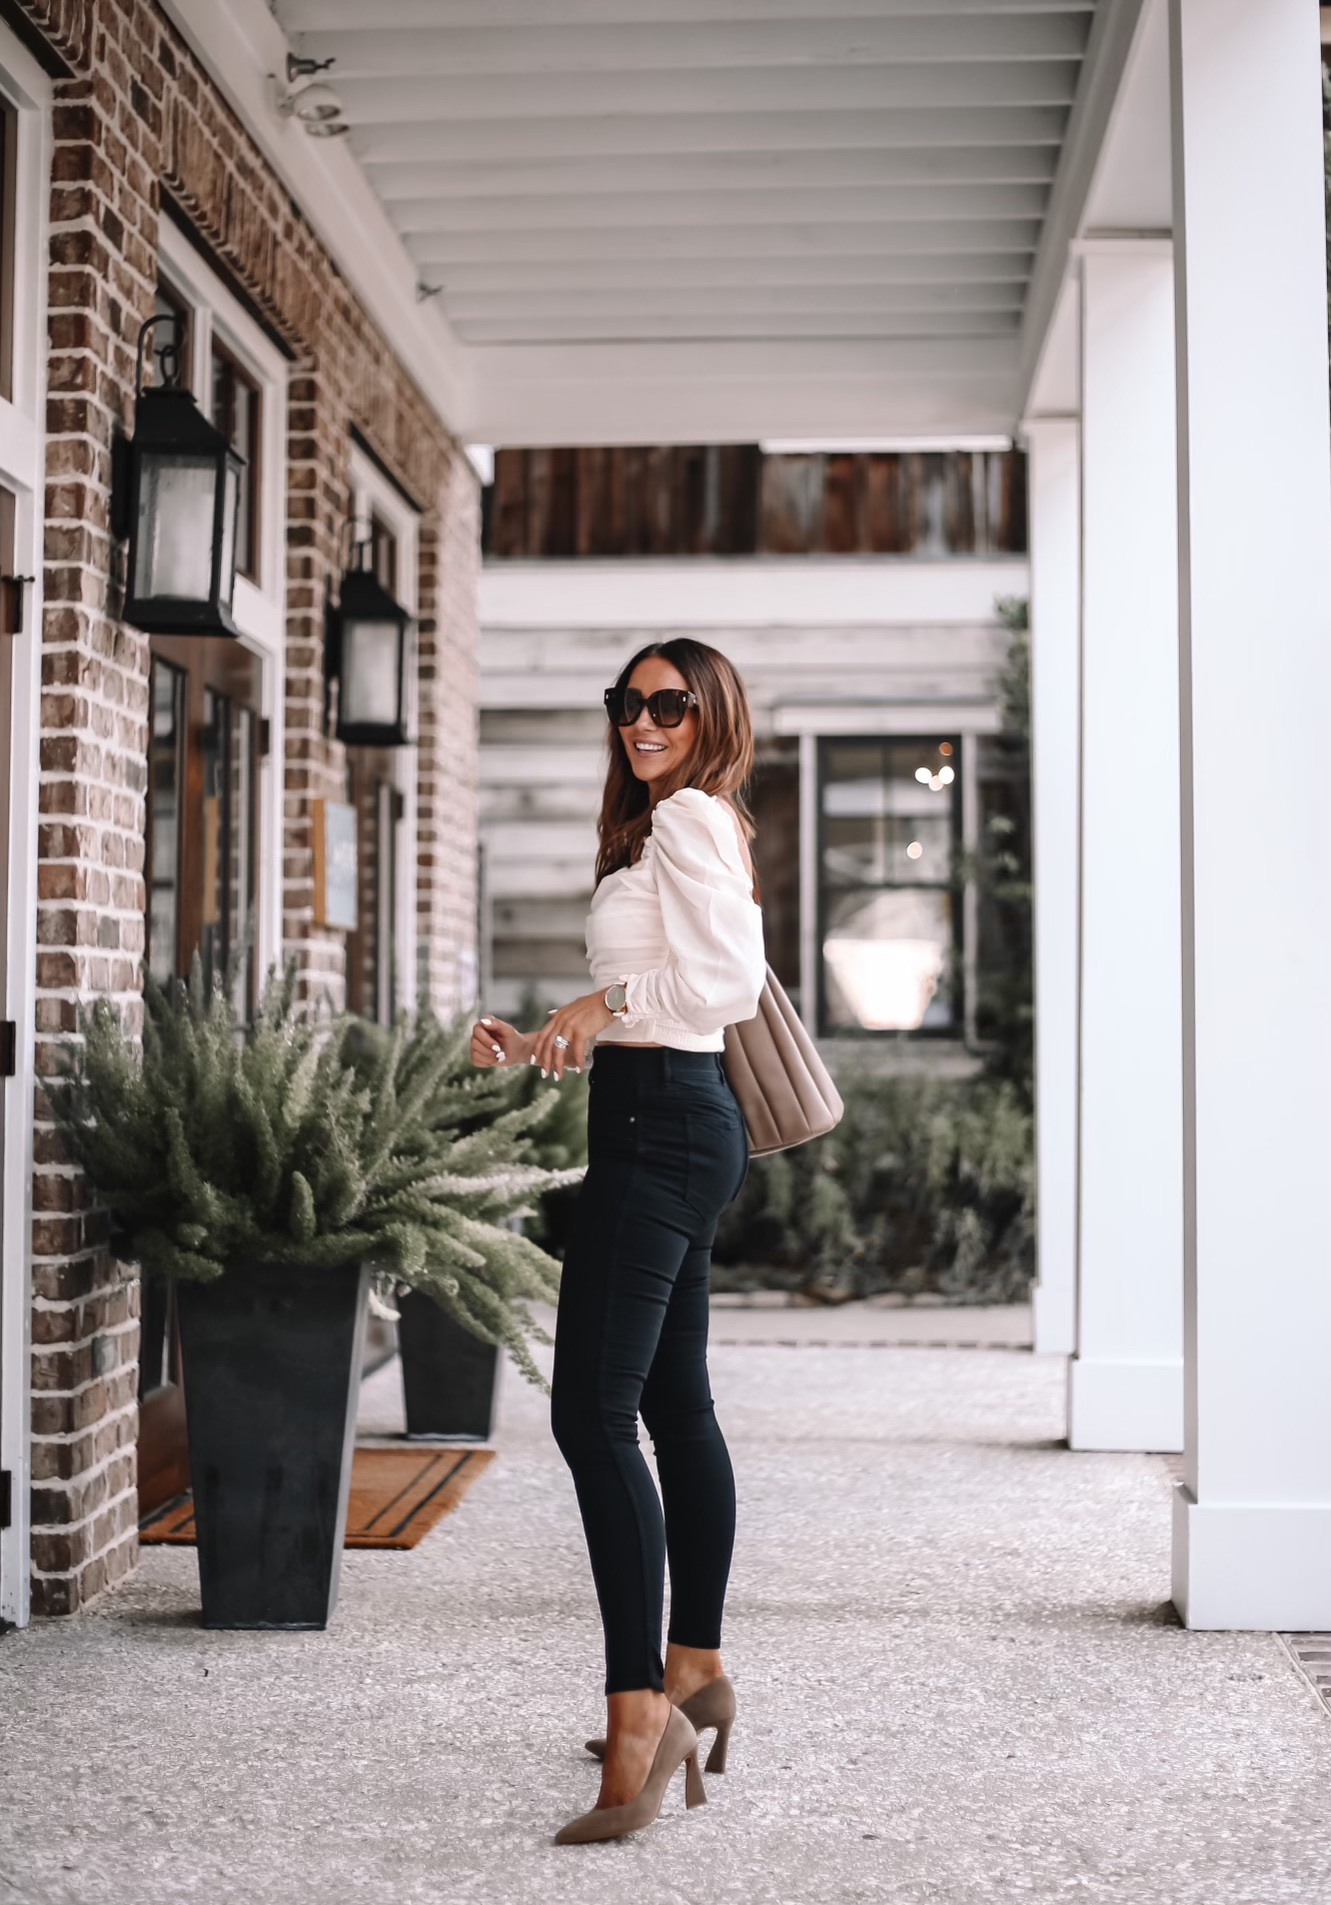 nordstrom workwear, nordstrom fall style